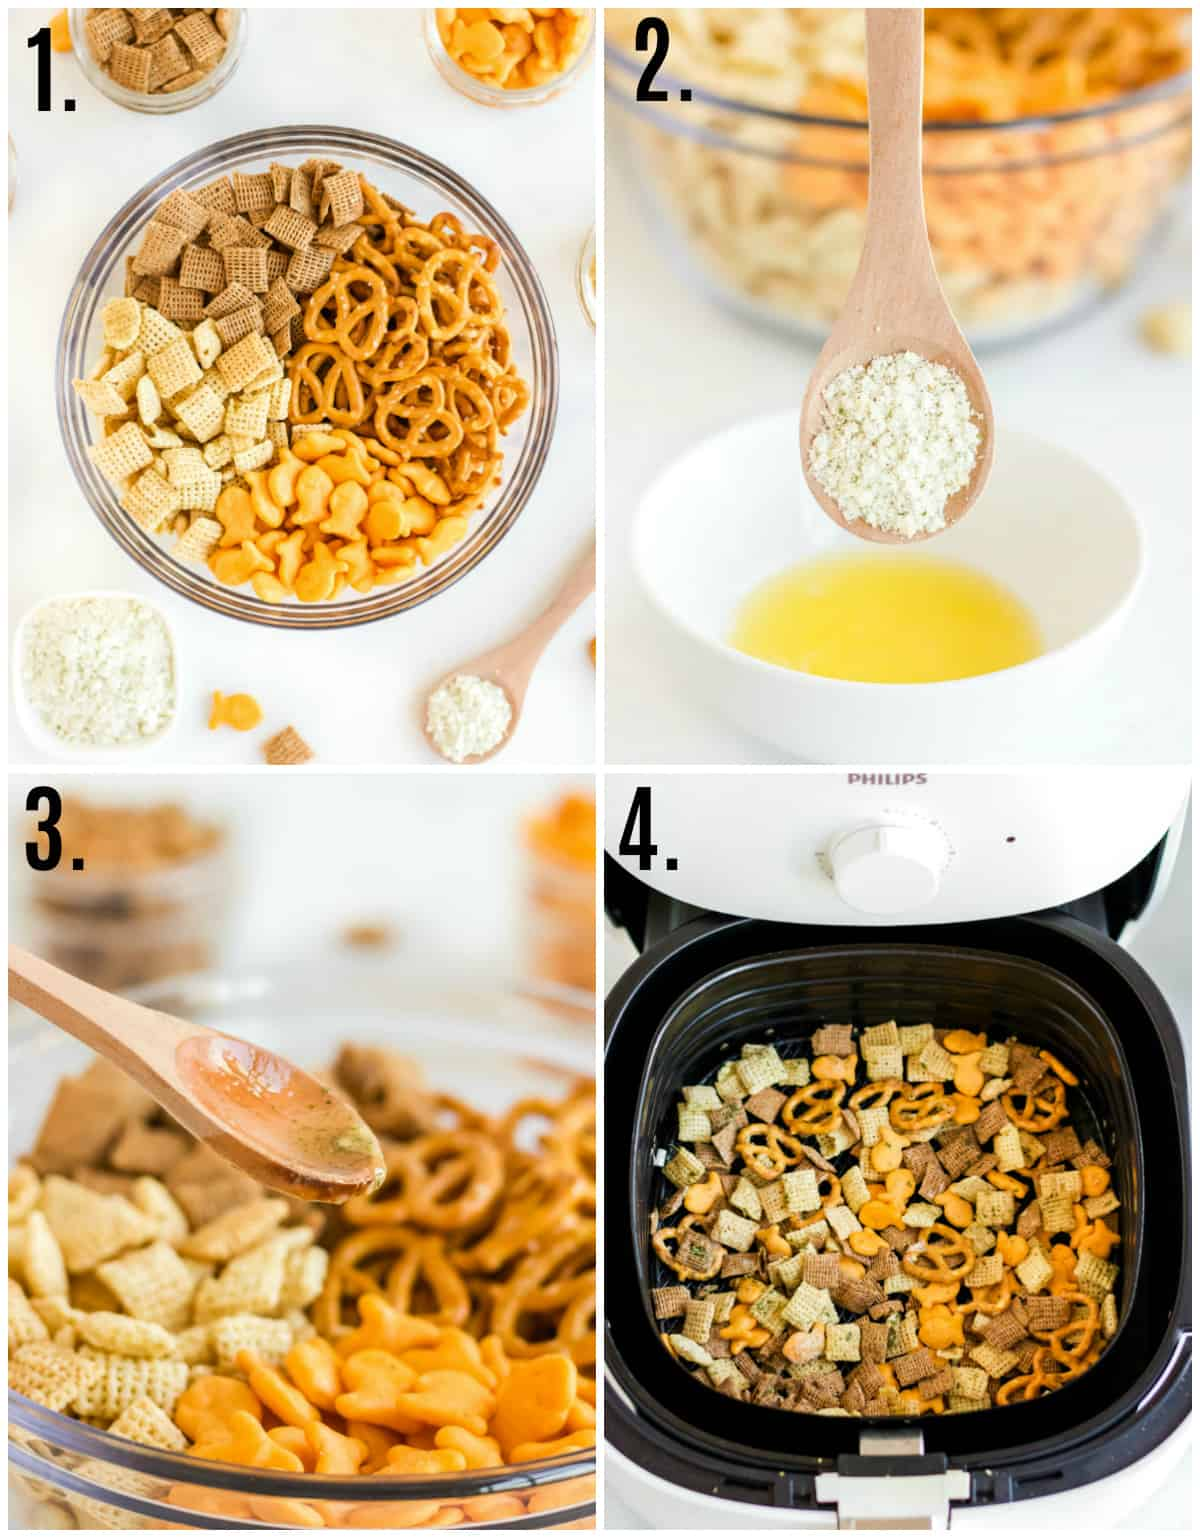 Step by step photos on how to make Chex mix